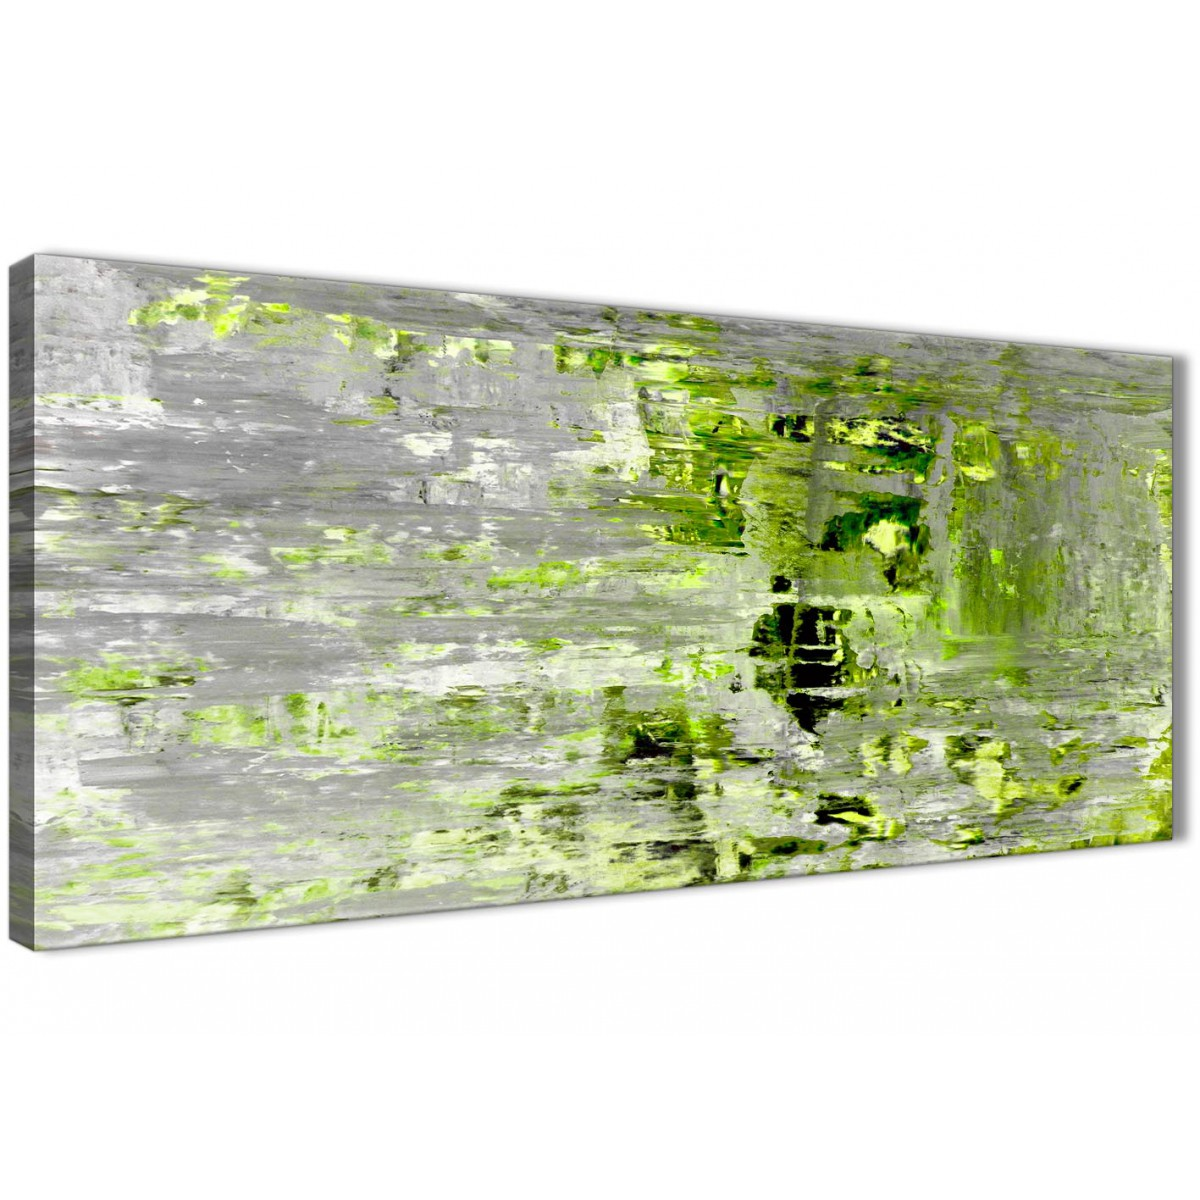 Moss Painting Images